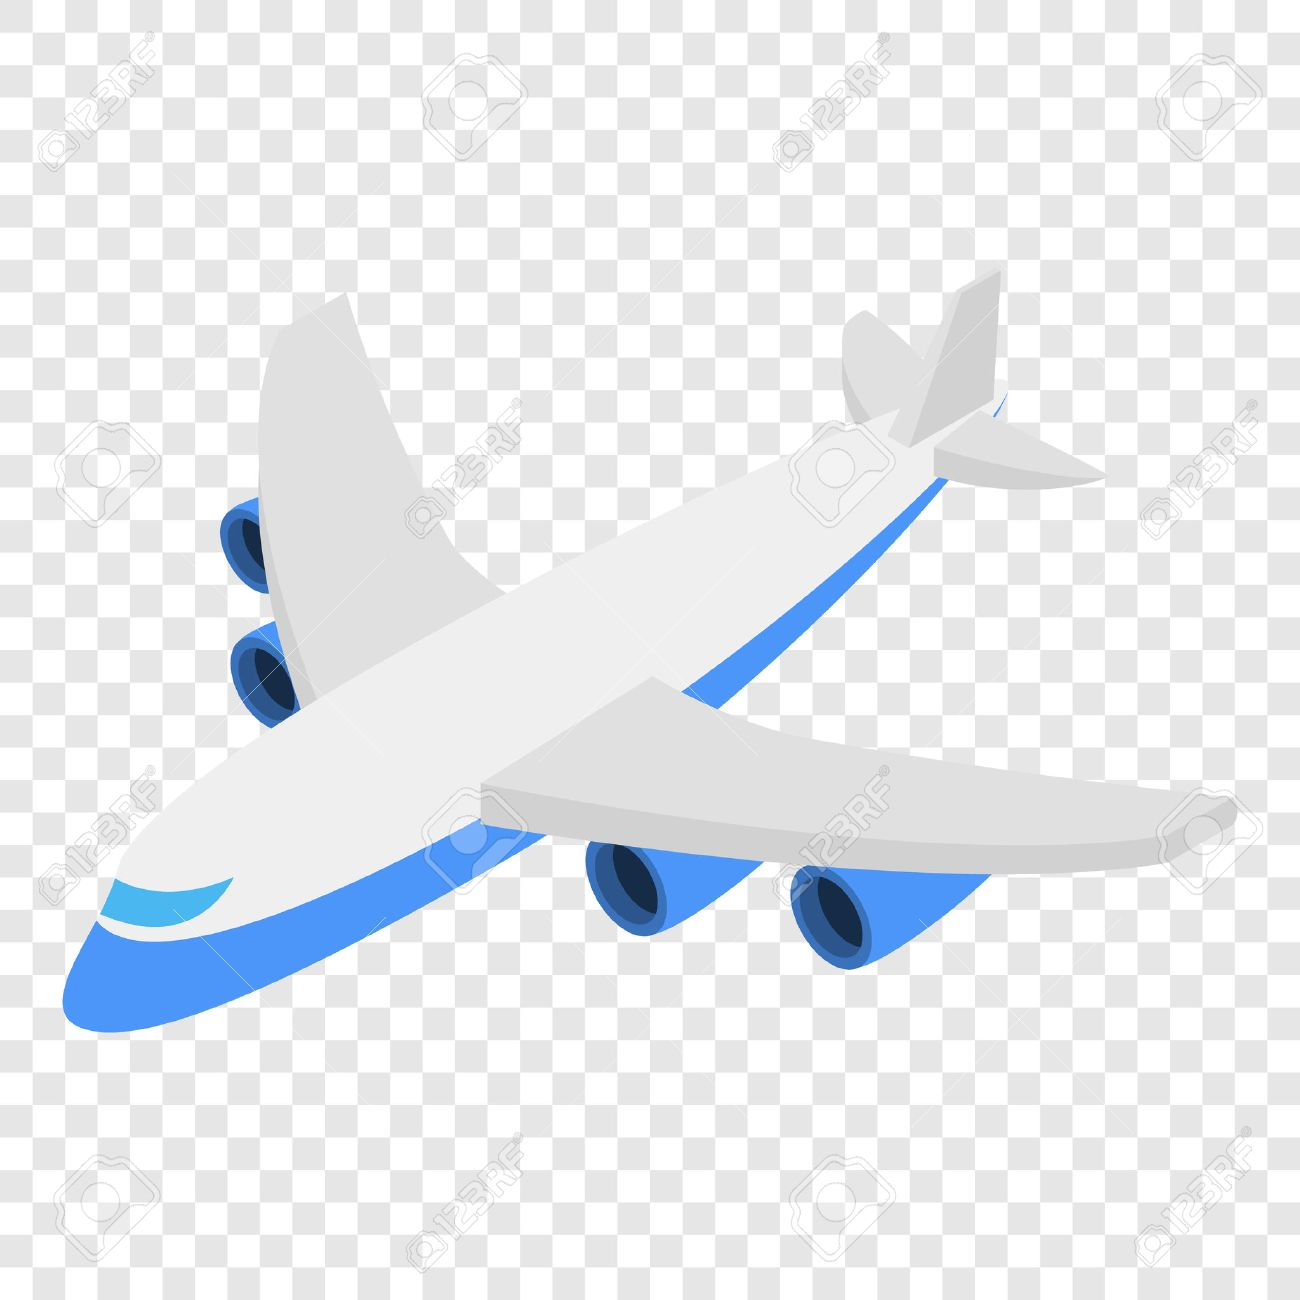 Airplane Clipart With Transparent Background.